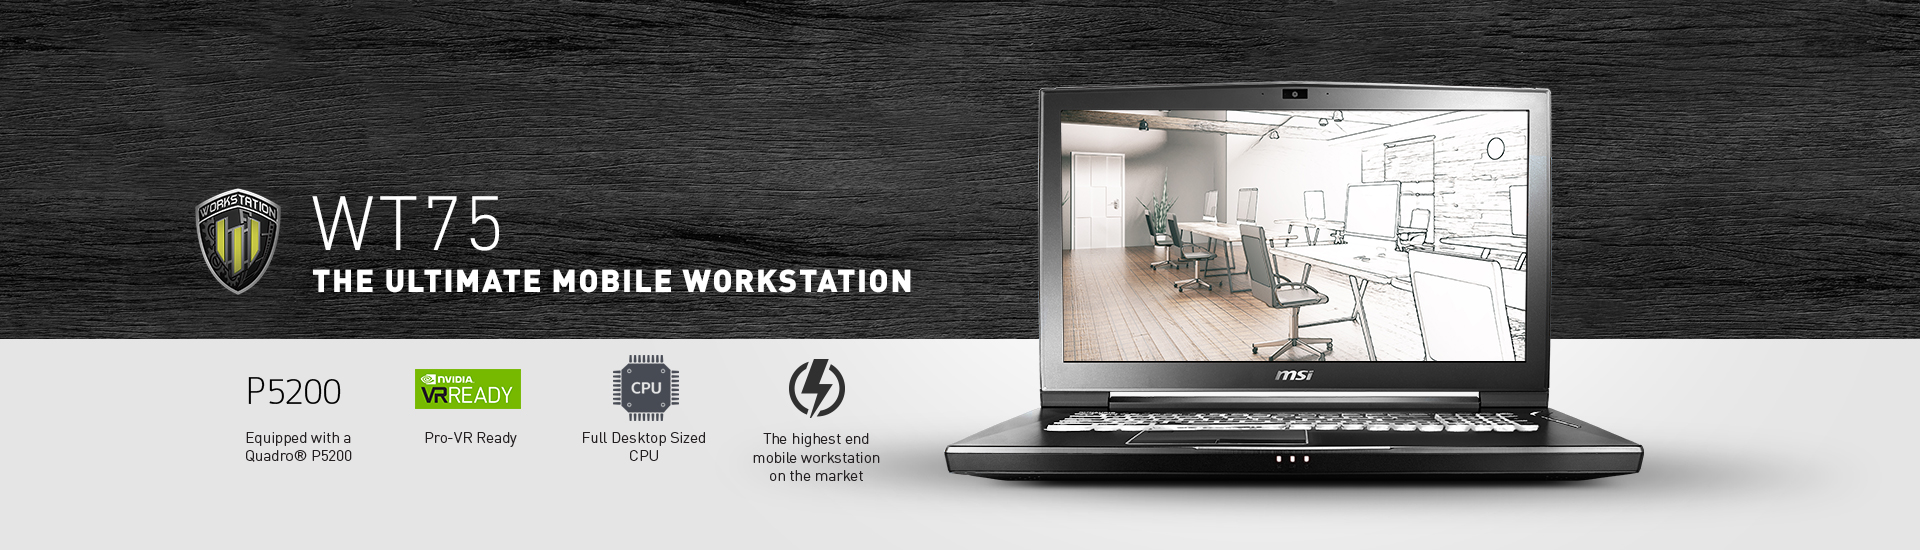 Workstation WT75 - CFL